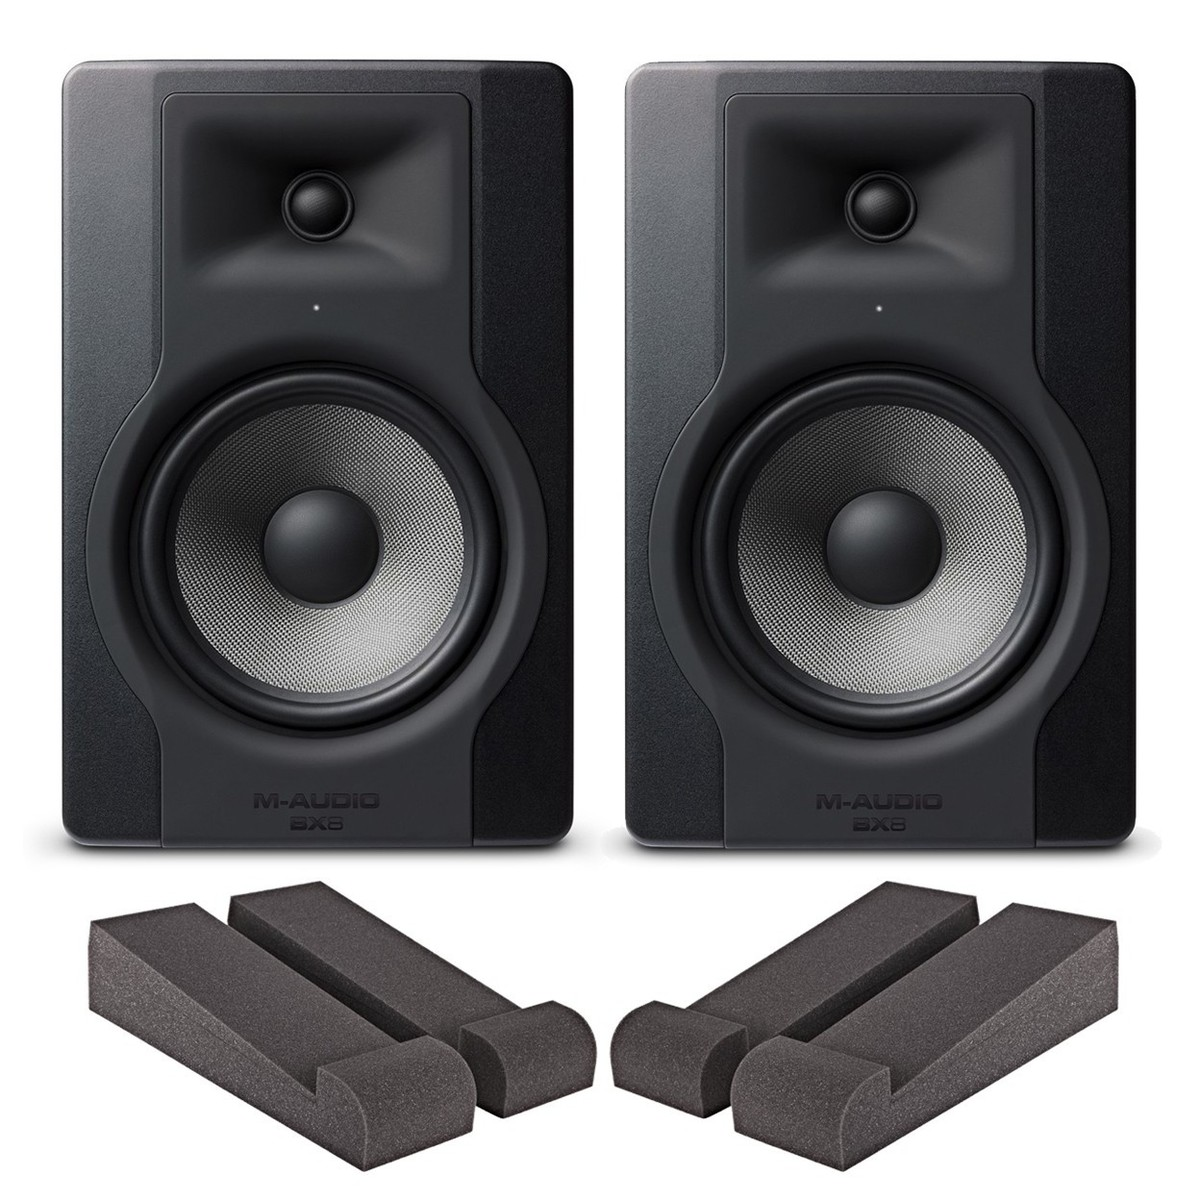 Cheap M-Audio BX8-D3 Pair with Iso Pads